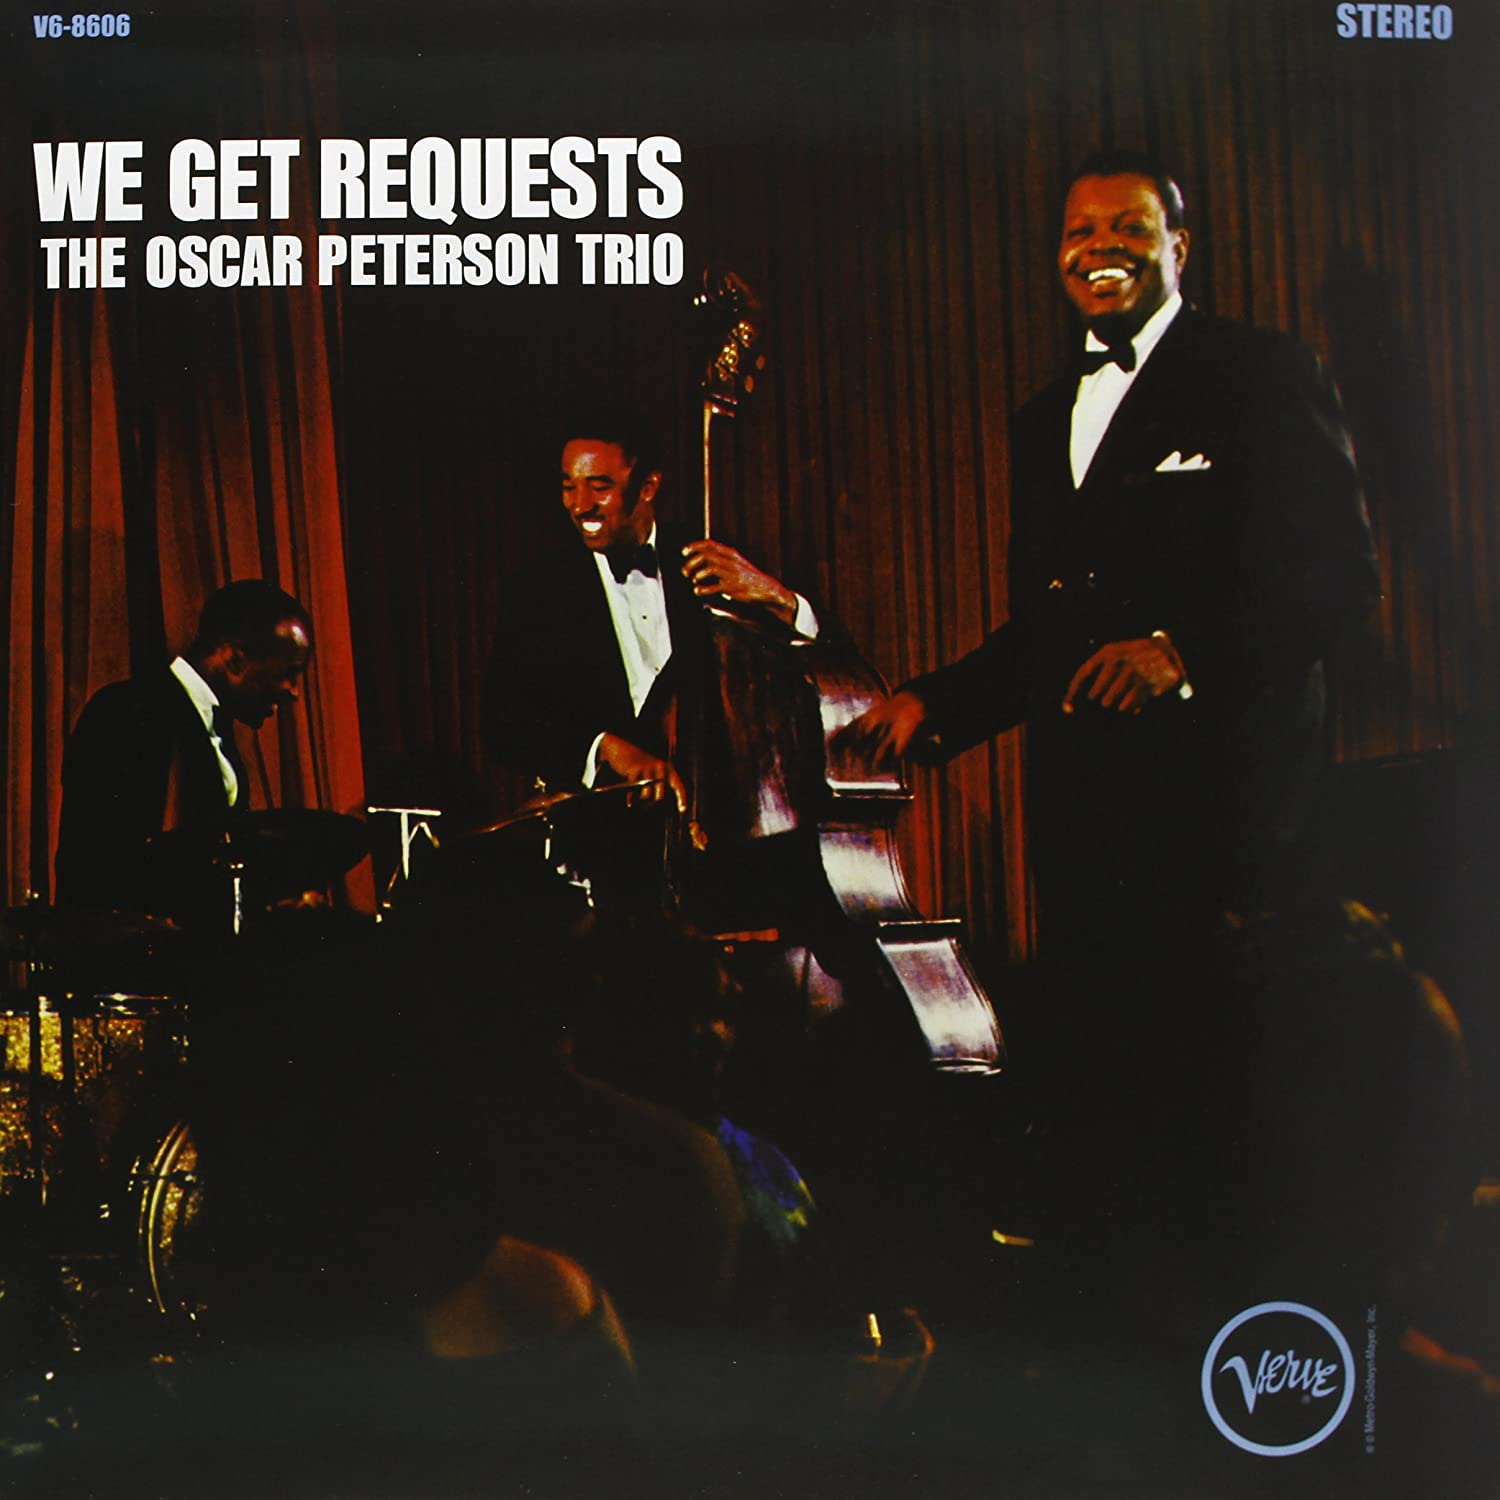 We Get Requests [12 inch Analog]                                                                                                                                                                                                                                                    <span class=